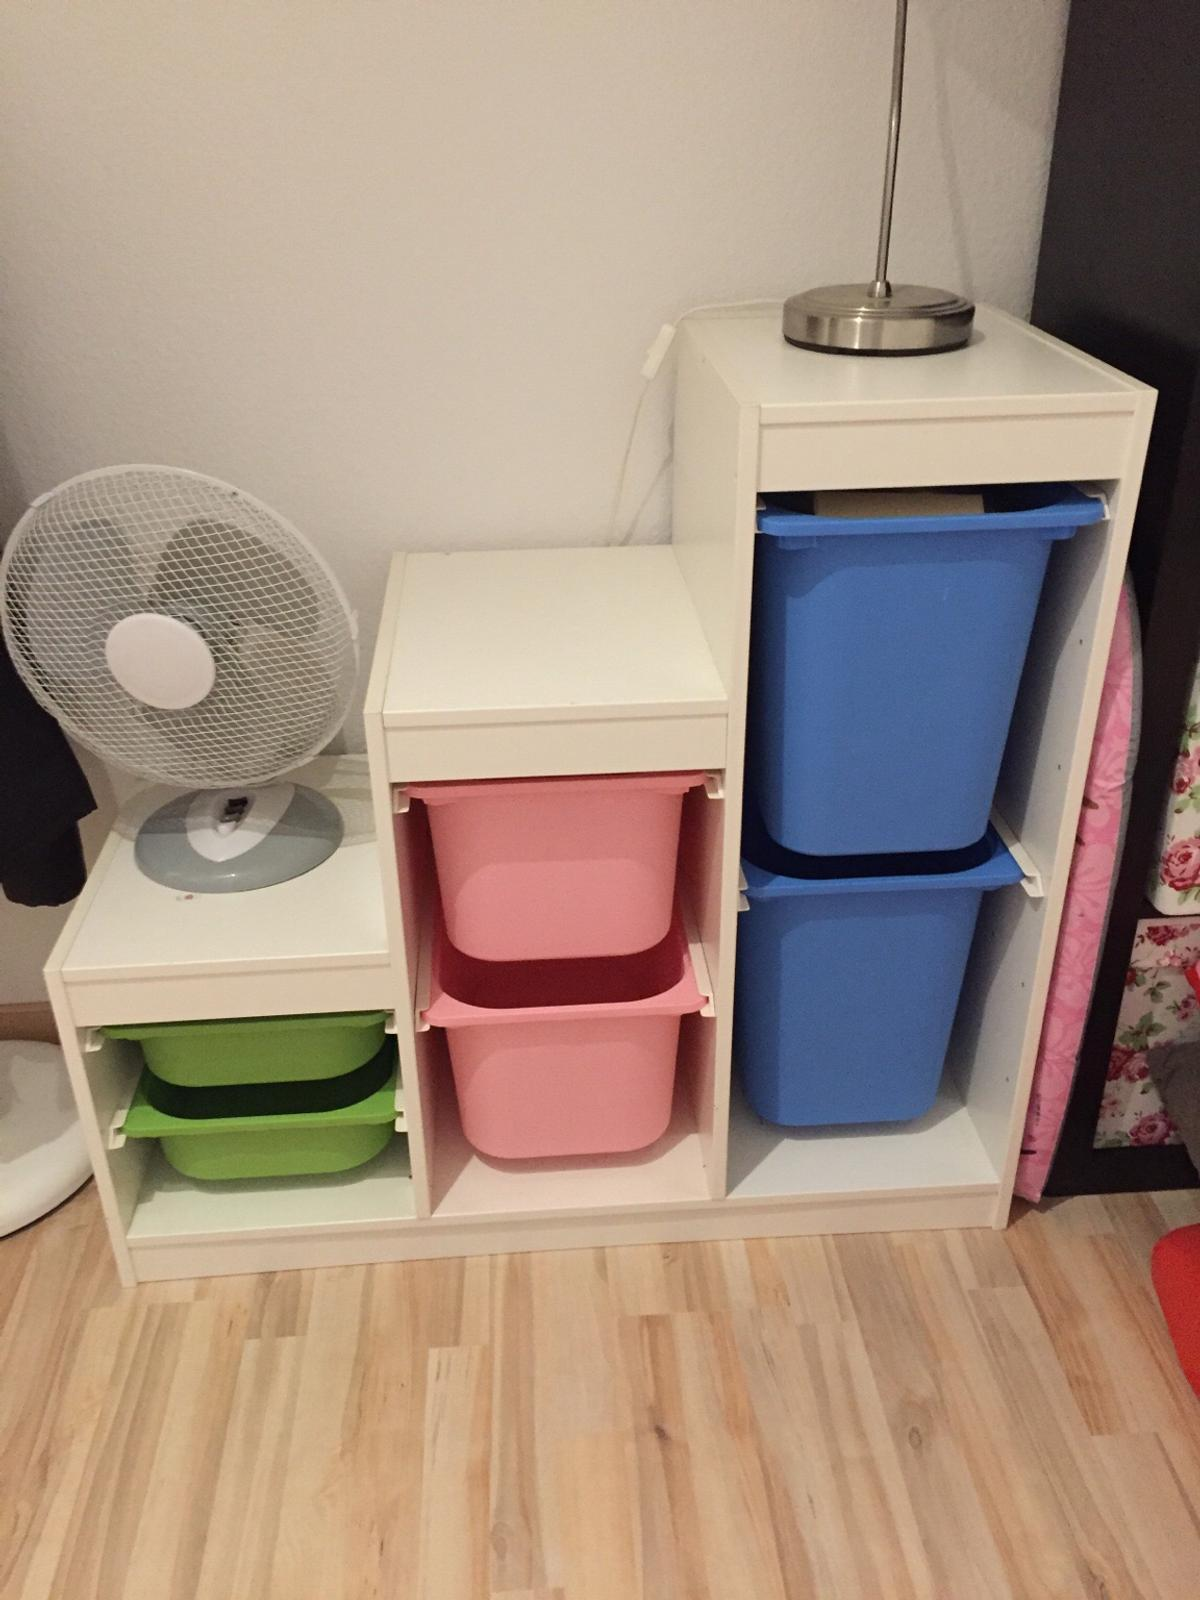 Ikea Kinder Regal In 55276 Oppenheim For 60 00 For Sale Shpock